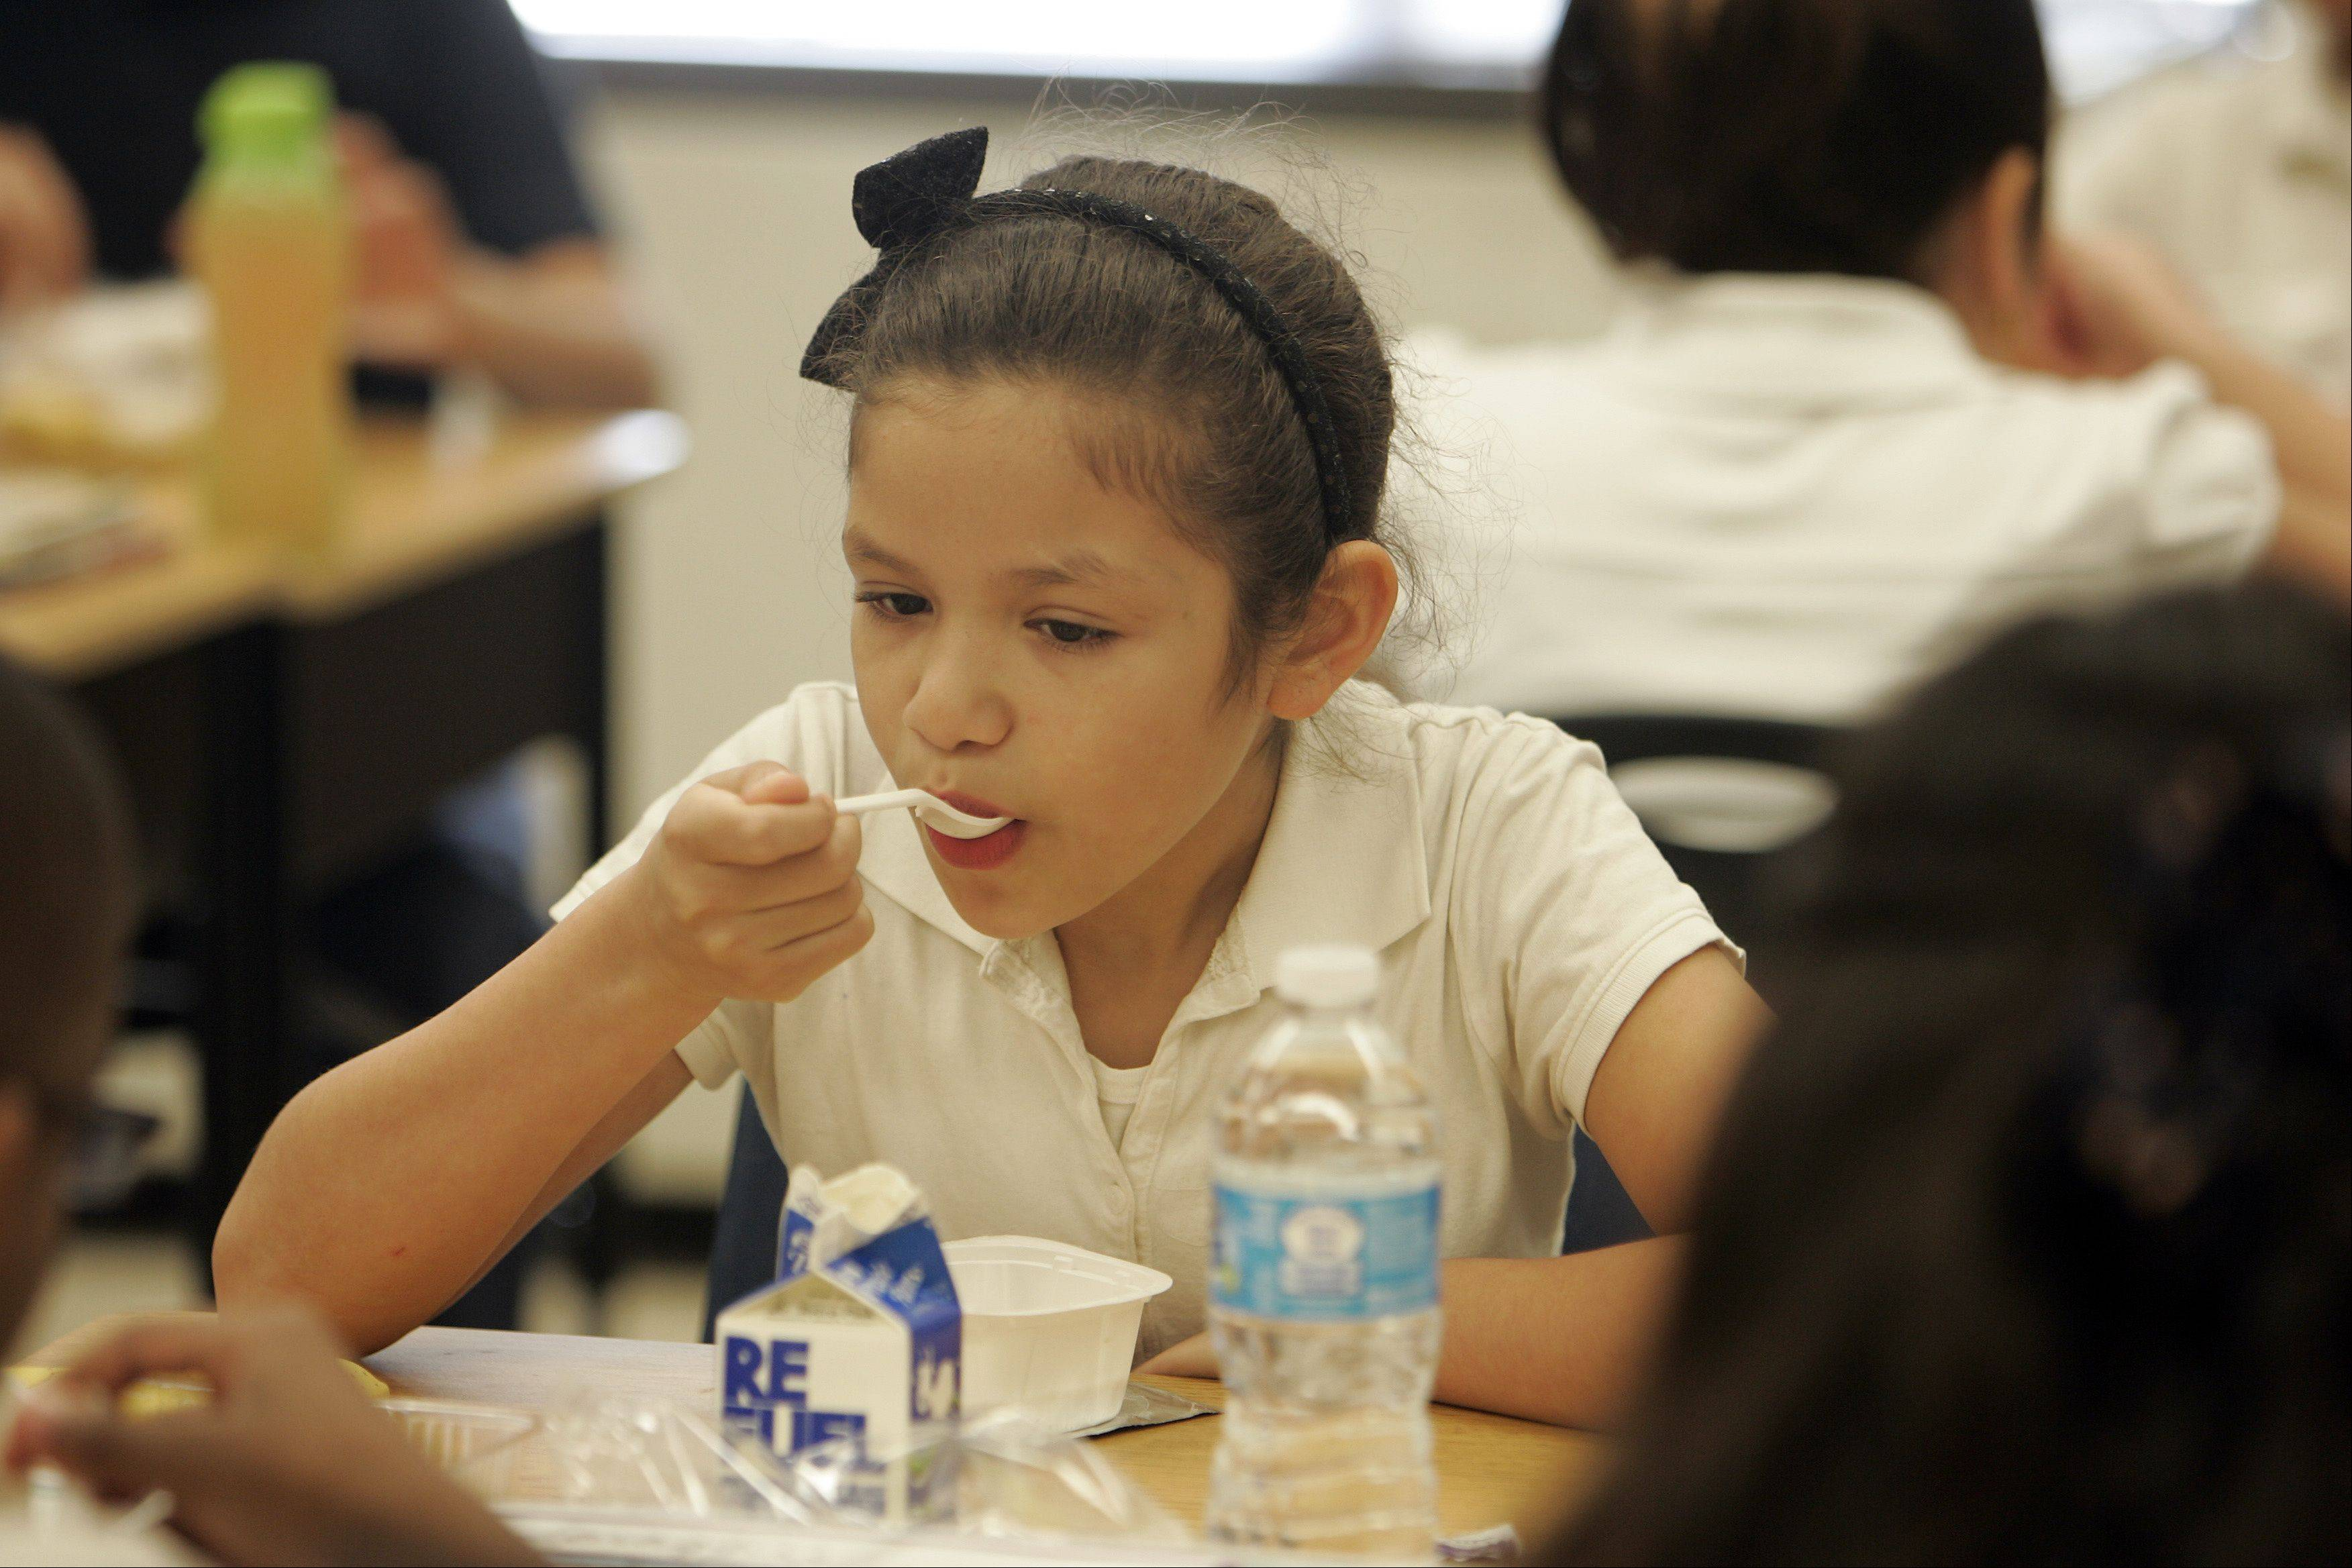 Delilah Herrera, 10, a fourth-grade student at Harriet Gifford Elementary School in Elgin, enjoys breakfast Thursday morning.